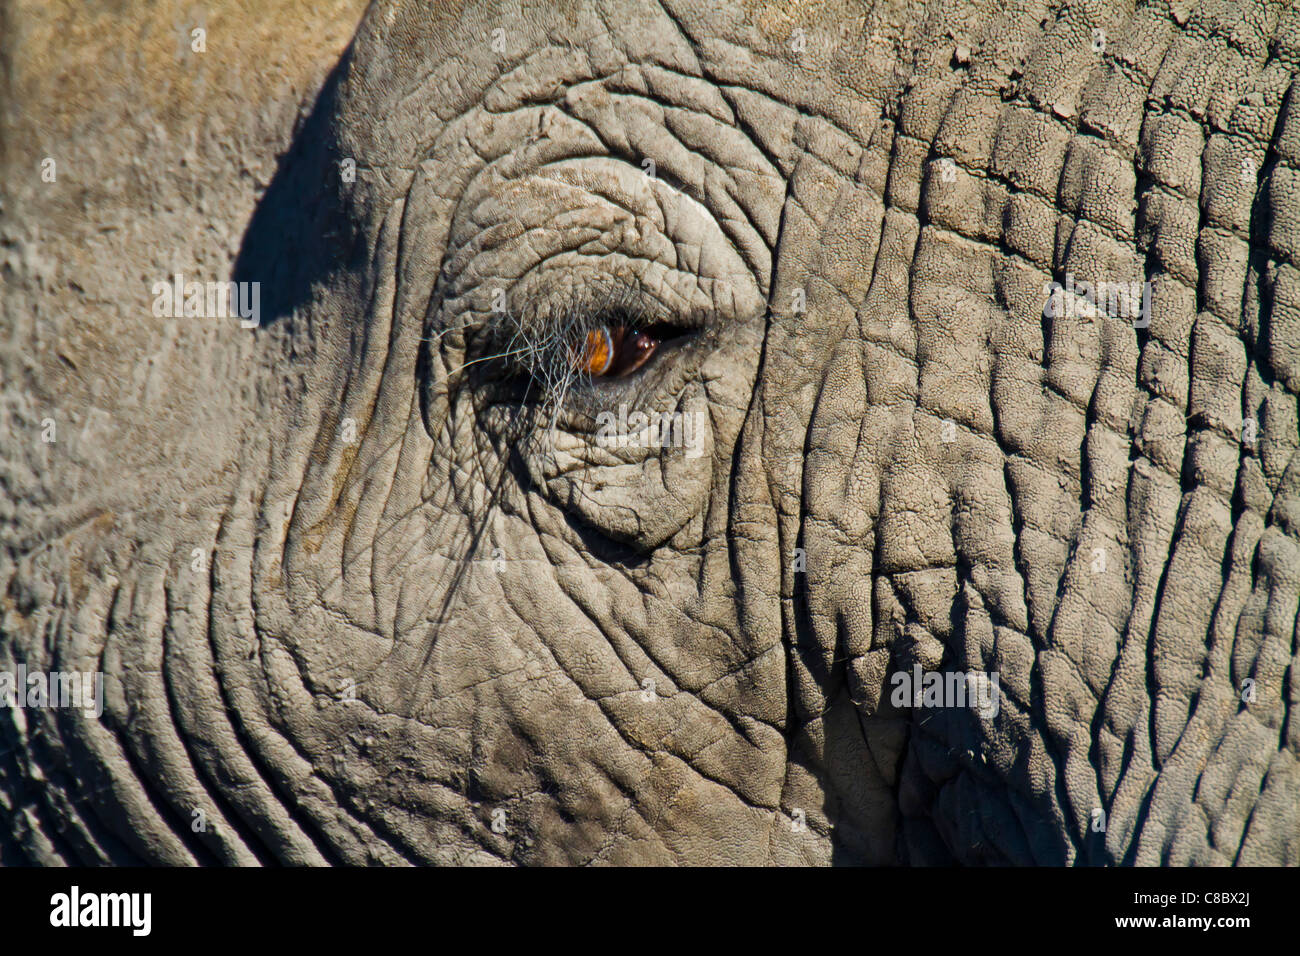 elephant eye, Hwange National Park, Zimbabwe - Stock Image